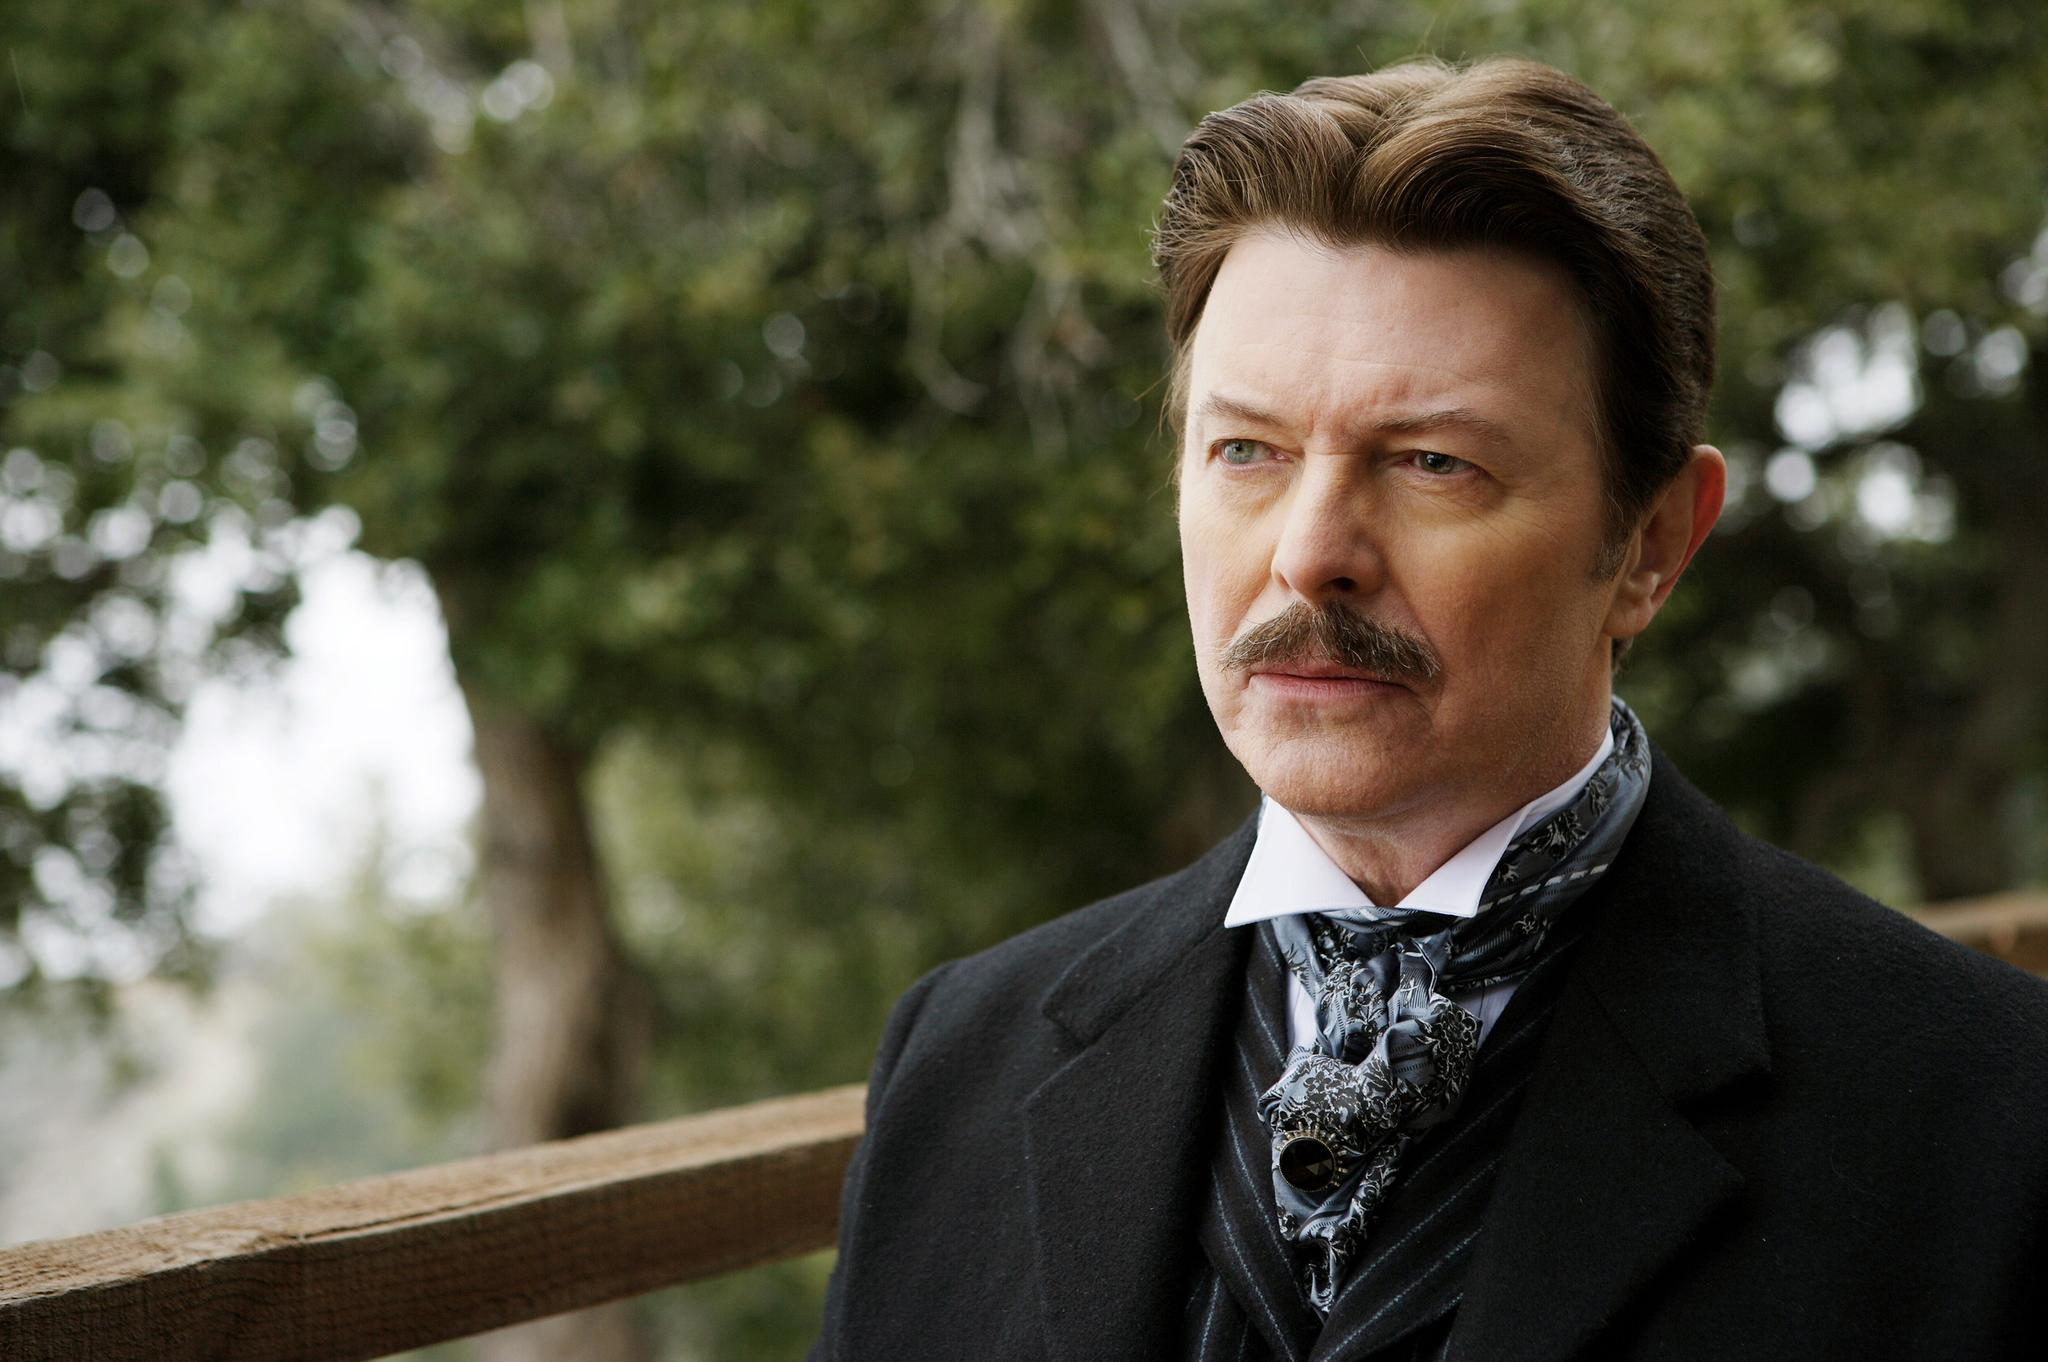 David Bowie stars as Nikola Tesla in THE PRESTIGE (2006). Buena Vista Pictures